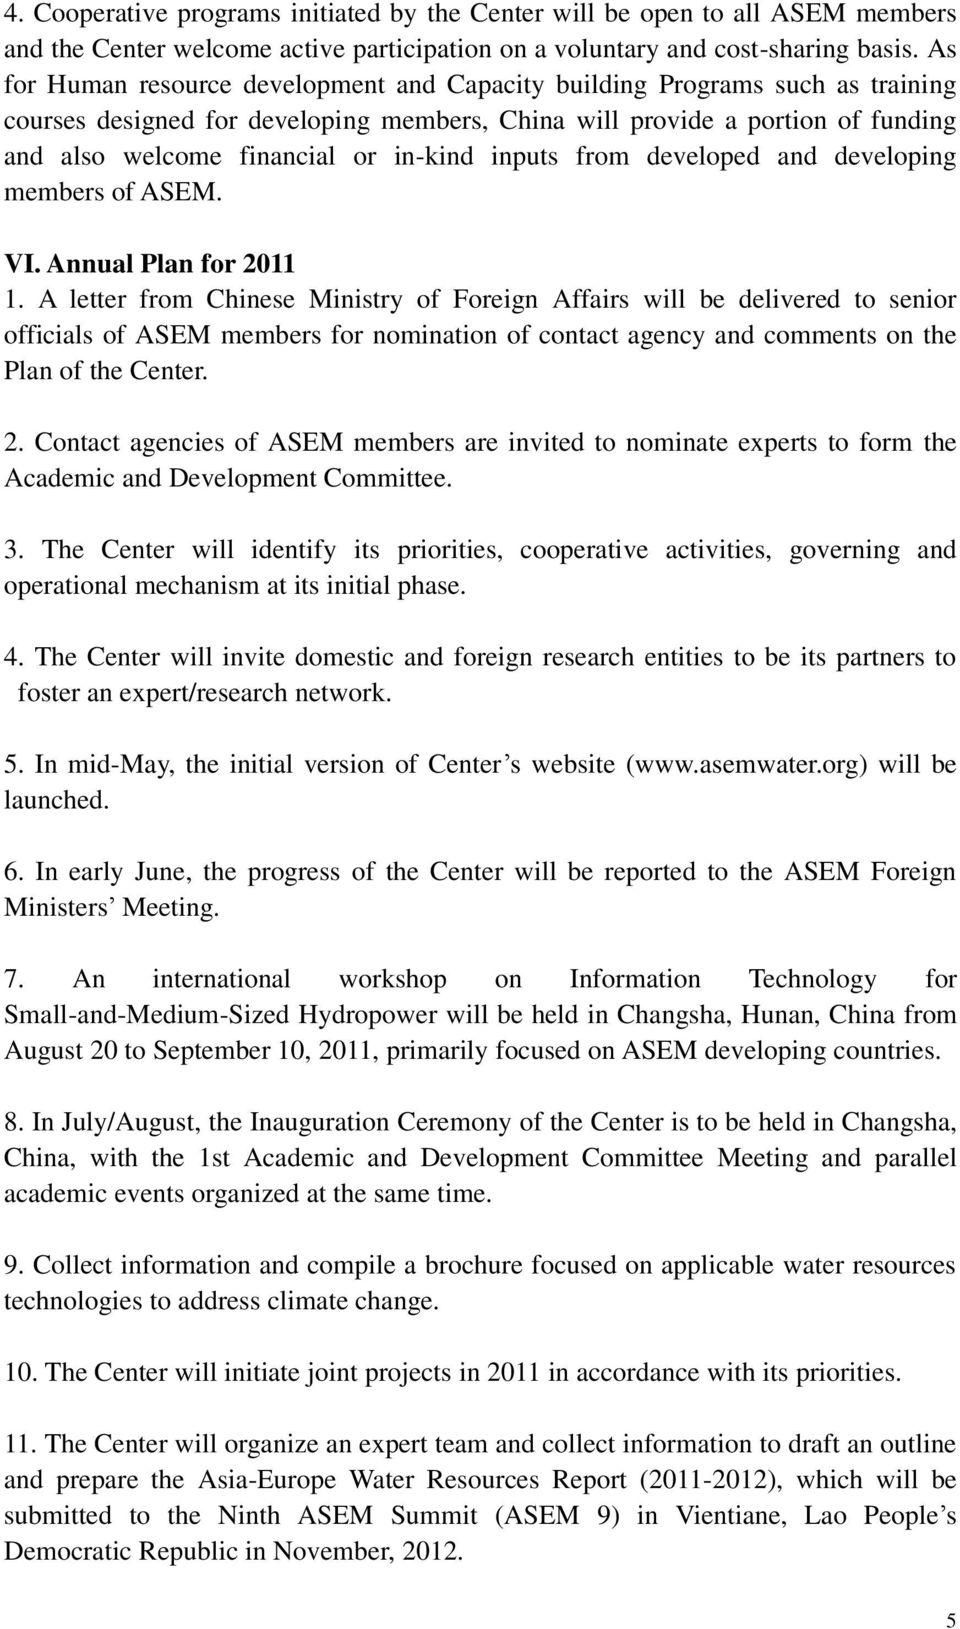 in-kind inputs from developed and developing members of ASEM. VI. Annual Plan for 2011 1.